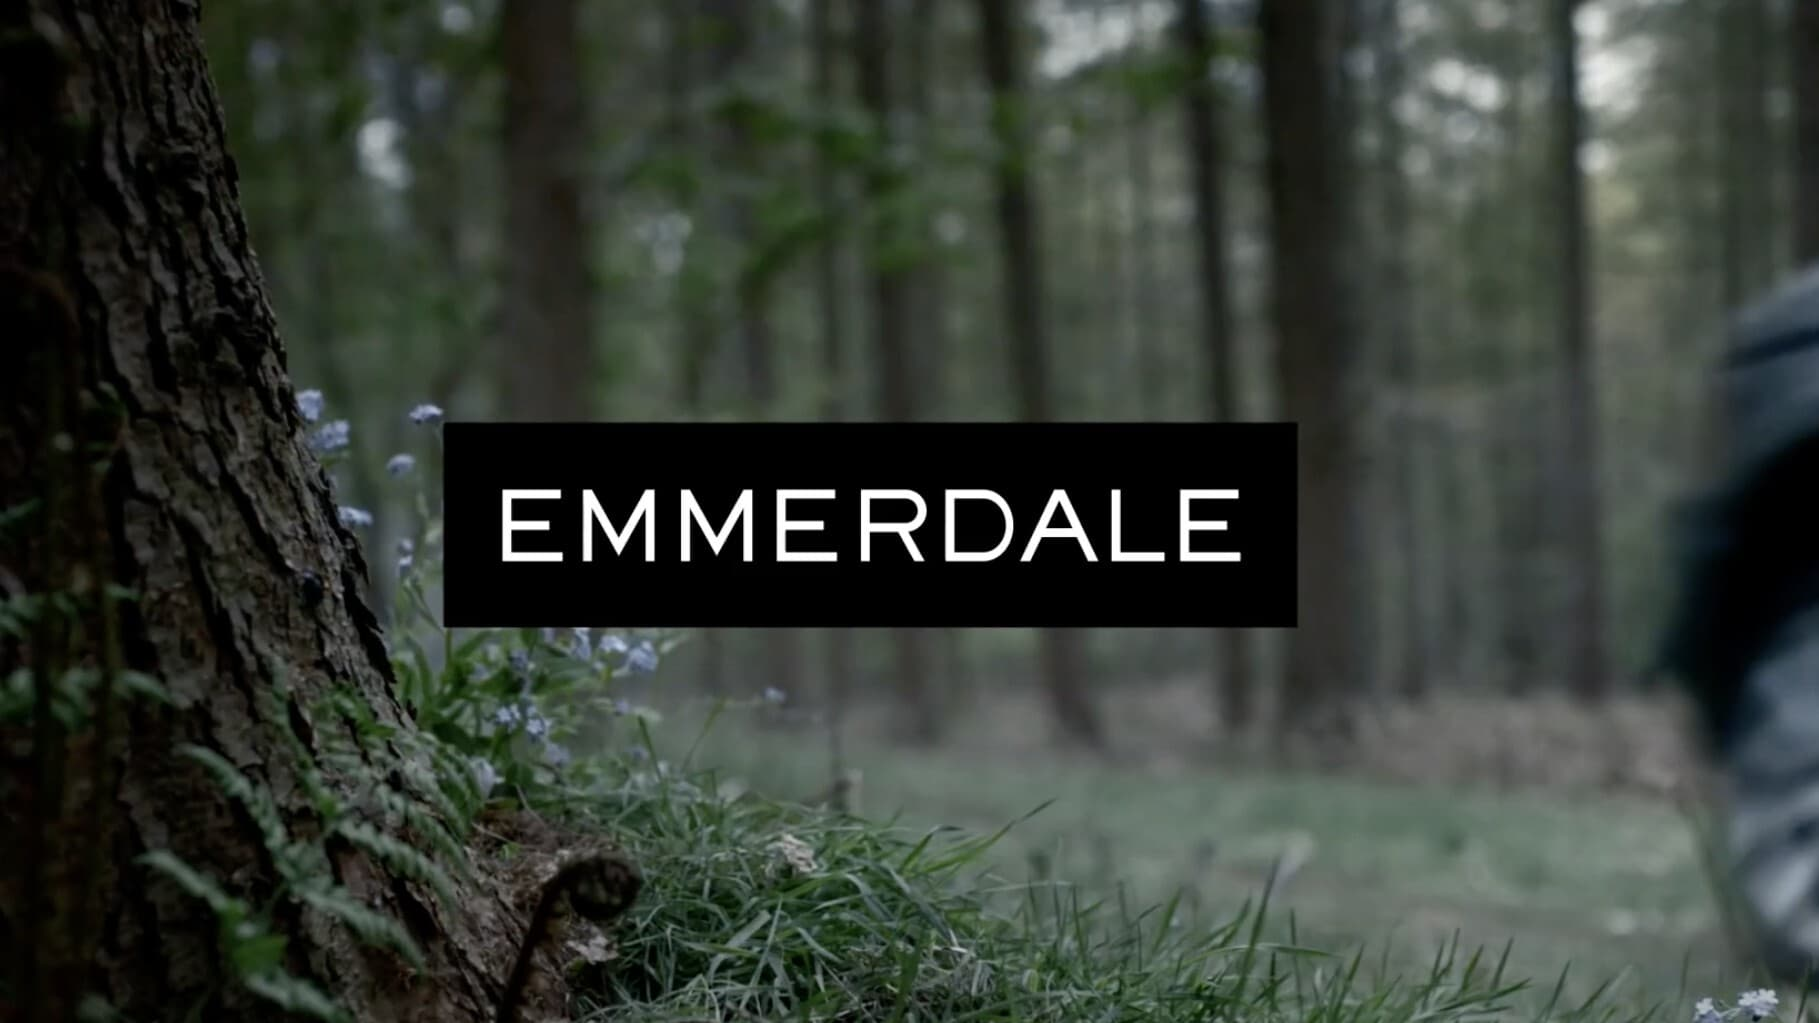 Emmerdale - Season 50 Episode 98 : Thursday 29 April 2021 (Part 1)